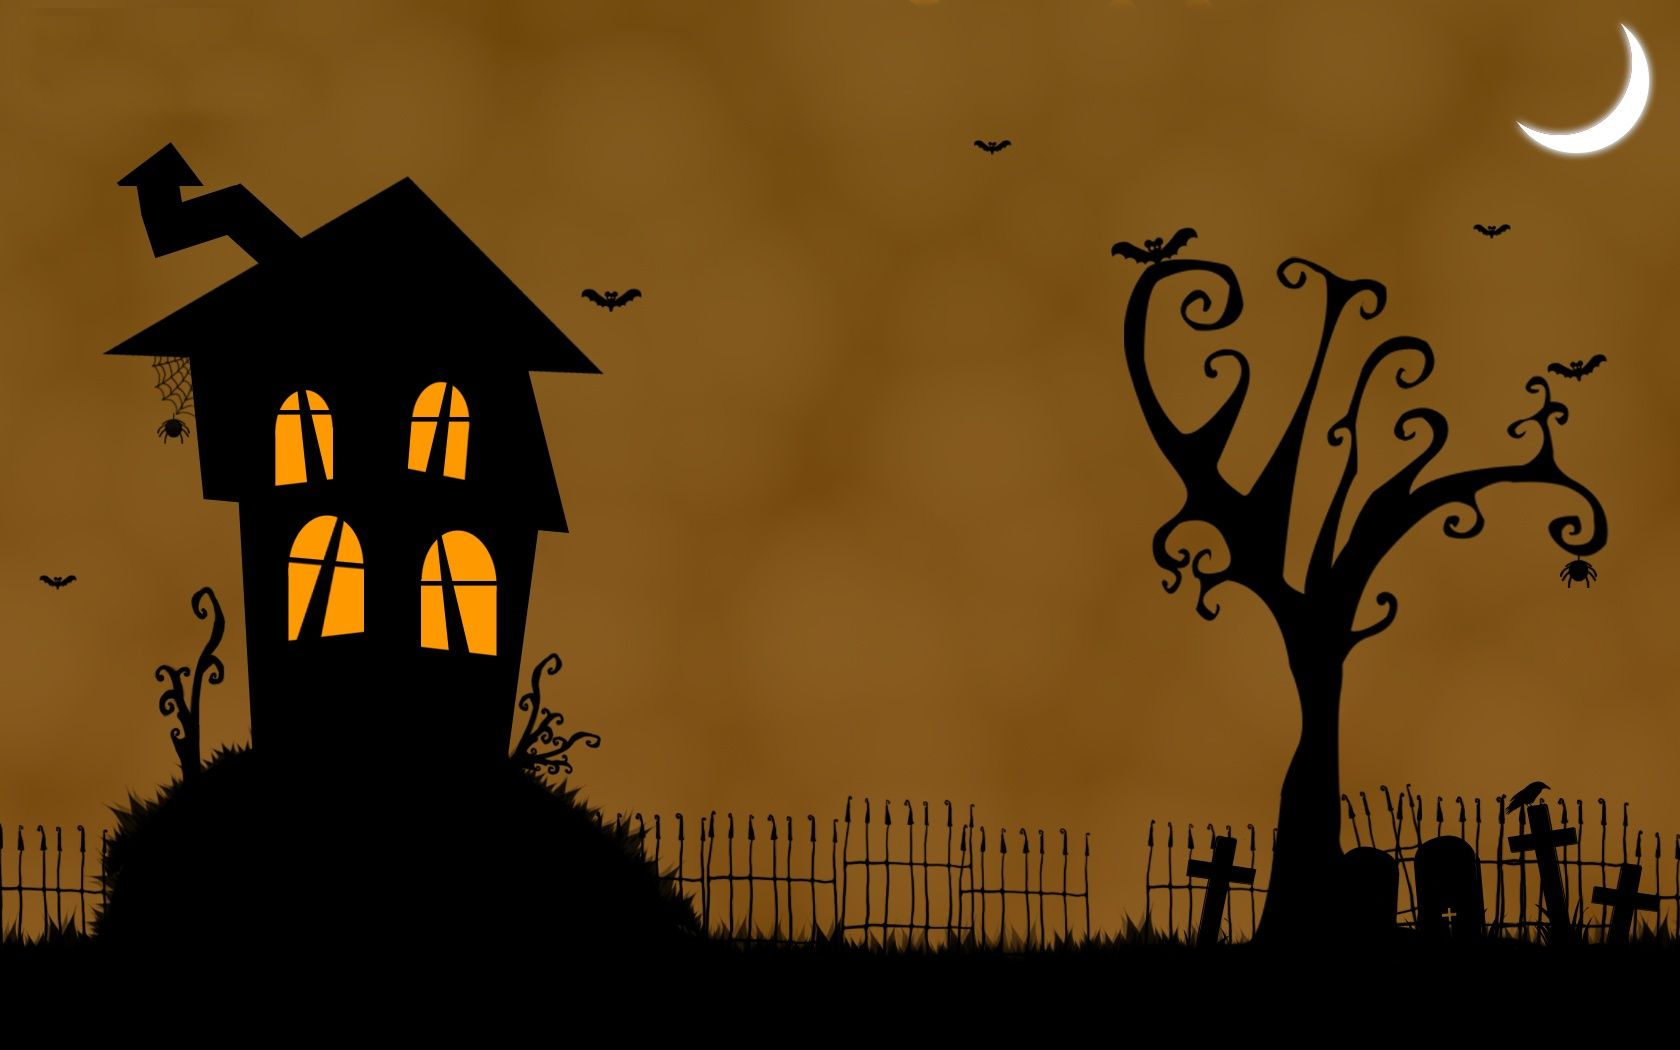 Haunted clipart background Backgrounds Wallpapers Wallpaper Hd Wallpaper